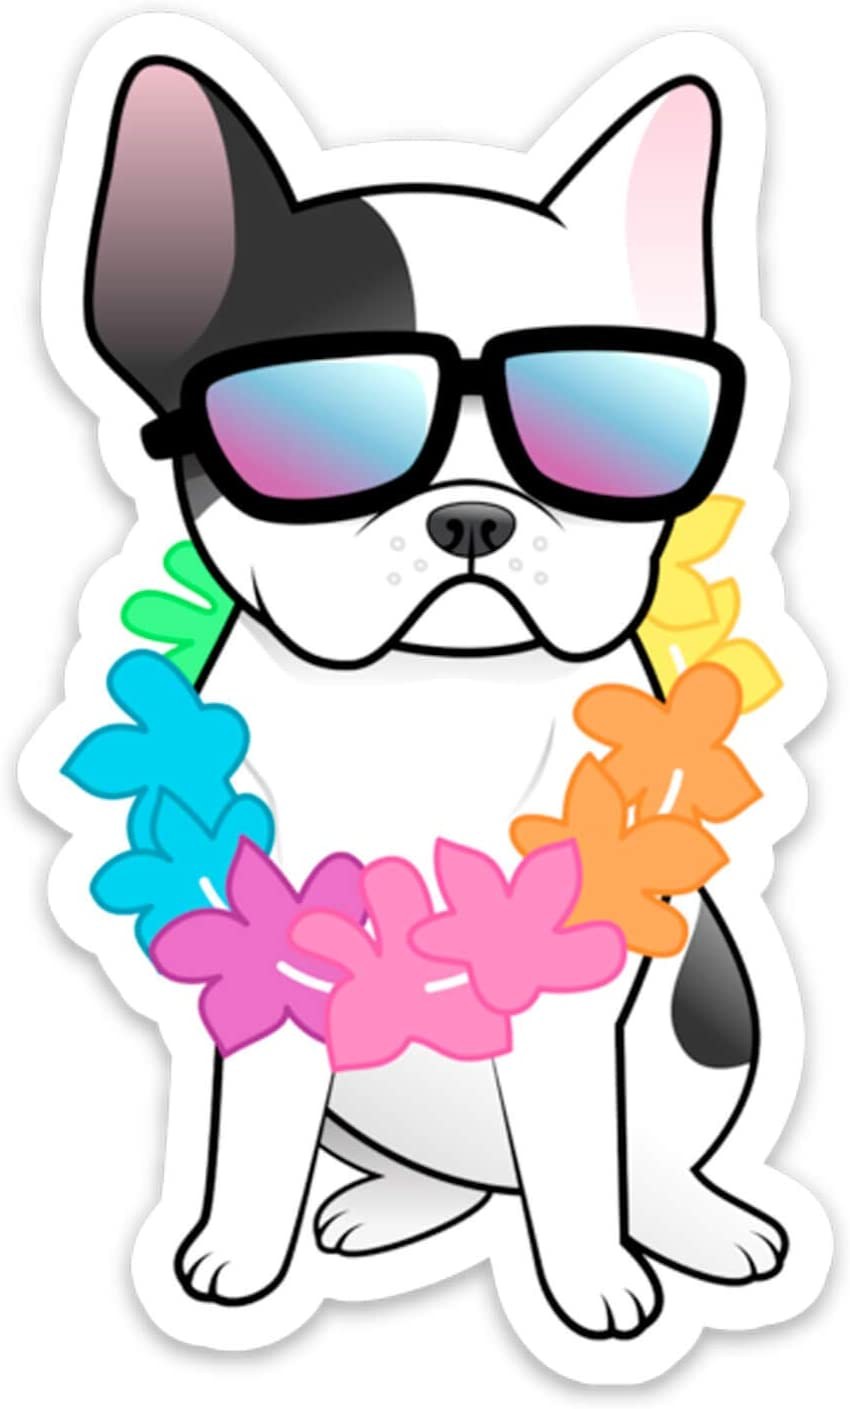 Stickeroonie Vinyl Sticker French Bulldog Vinyl Decals Frenchie Dog Lei Hawaiian Laptop Stickers, Skateboard Stickers, Hydroflask Stickers, Car Stickers, Phone Stickers 4 x 3""